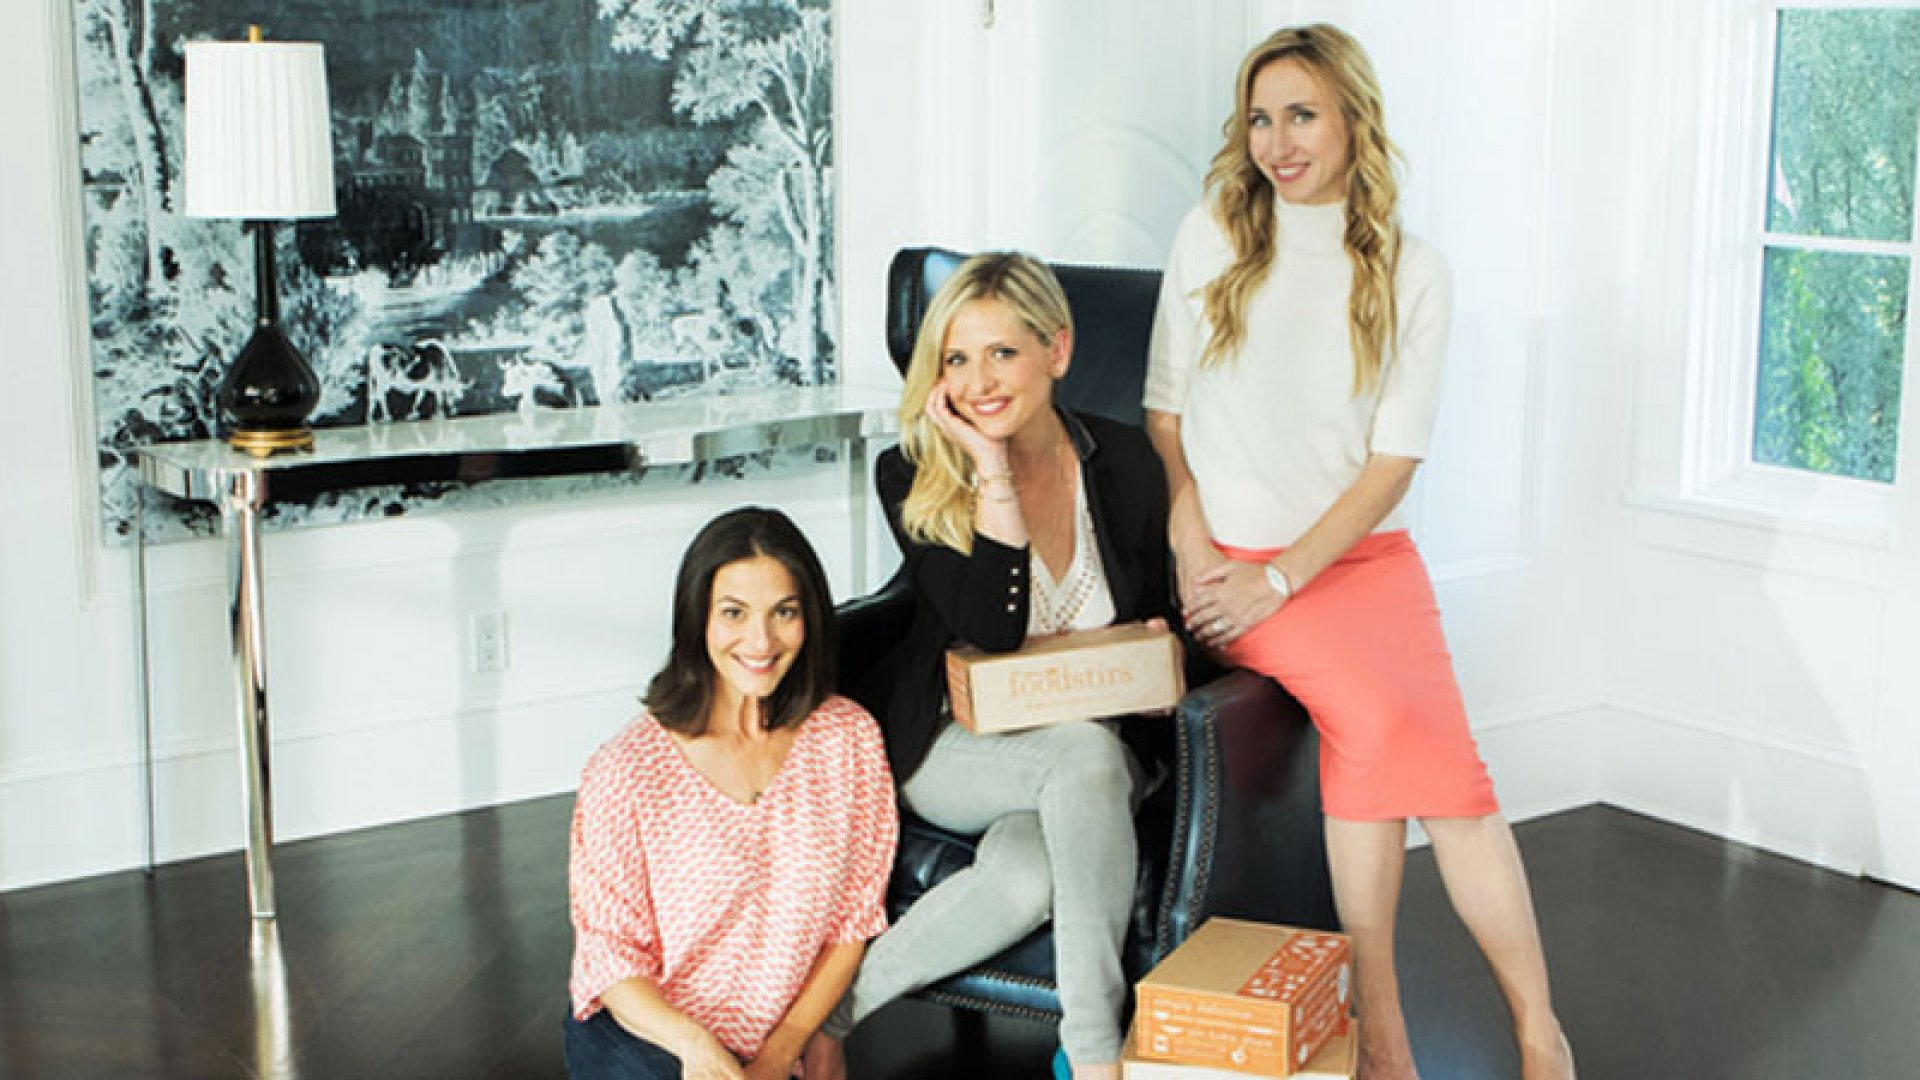 Gia Russo, Sarah Michelle Gellar, and Galit Laibow of Santa-Monica-based baking kit company Foodstirs.